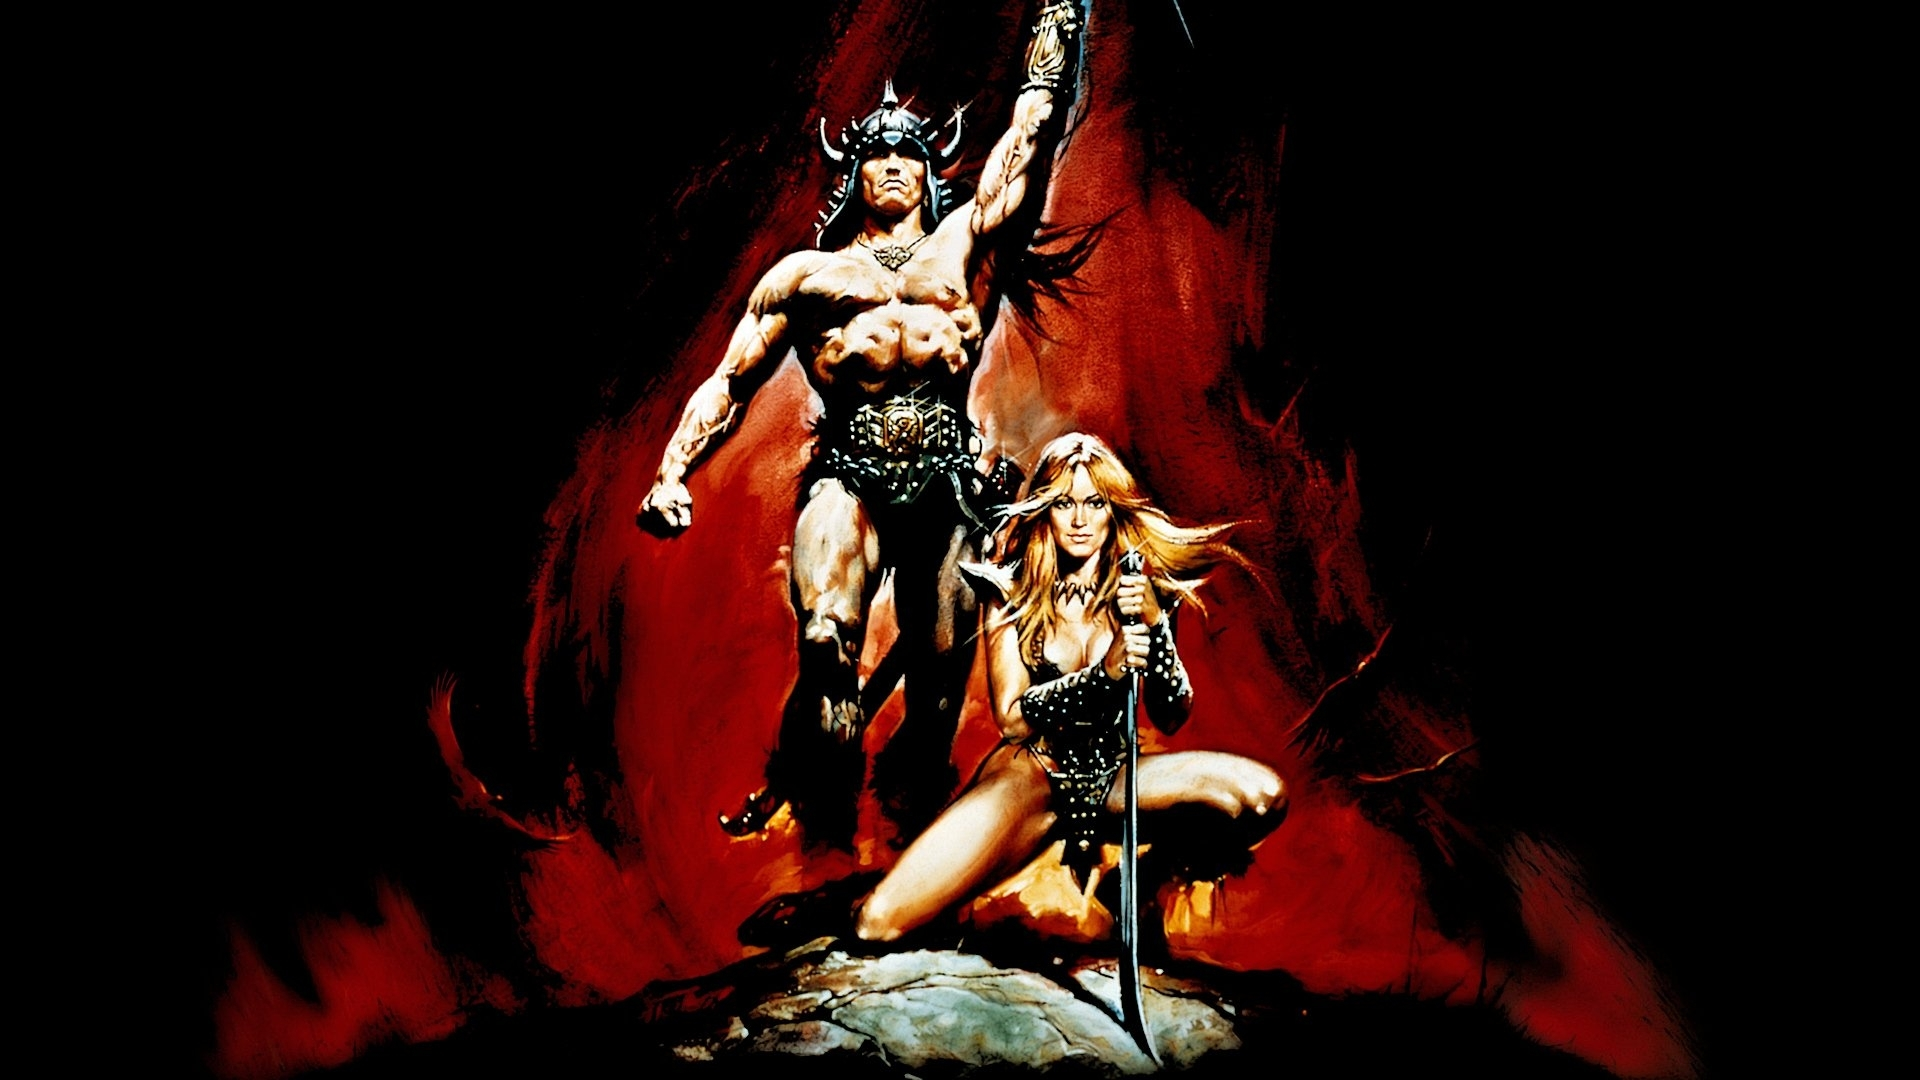 conan the barbarian (1982) full hd fond d'écran and arrière-plan